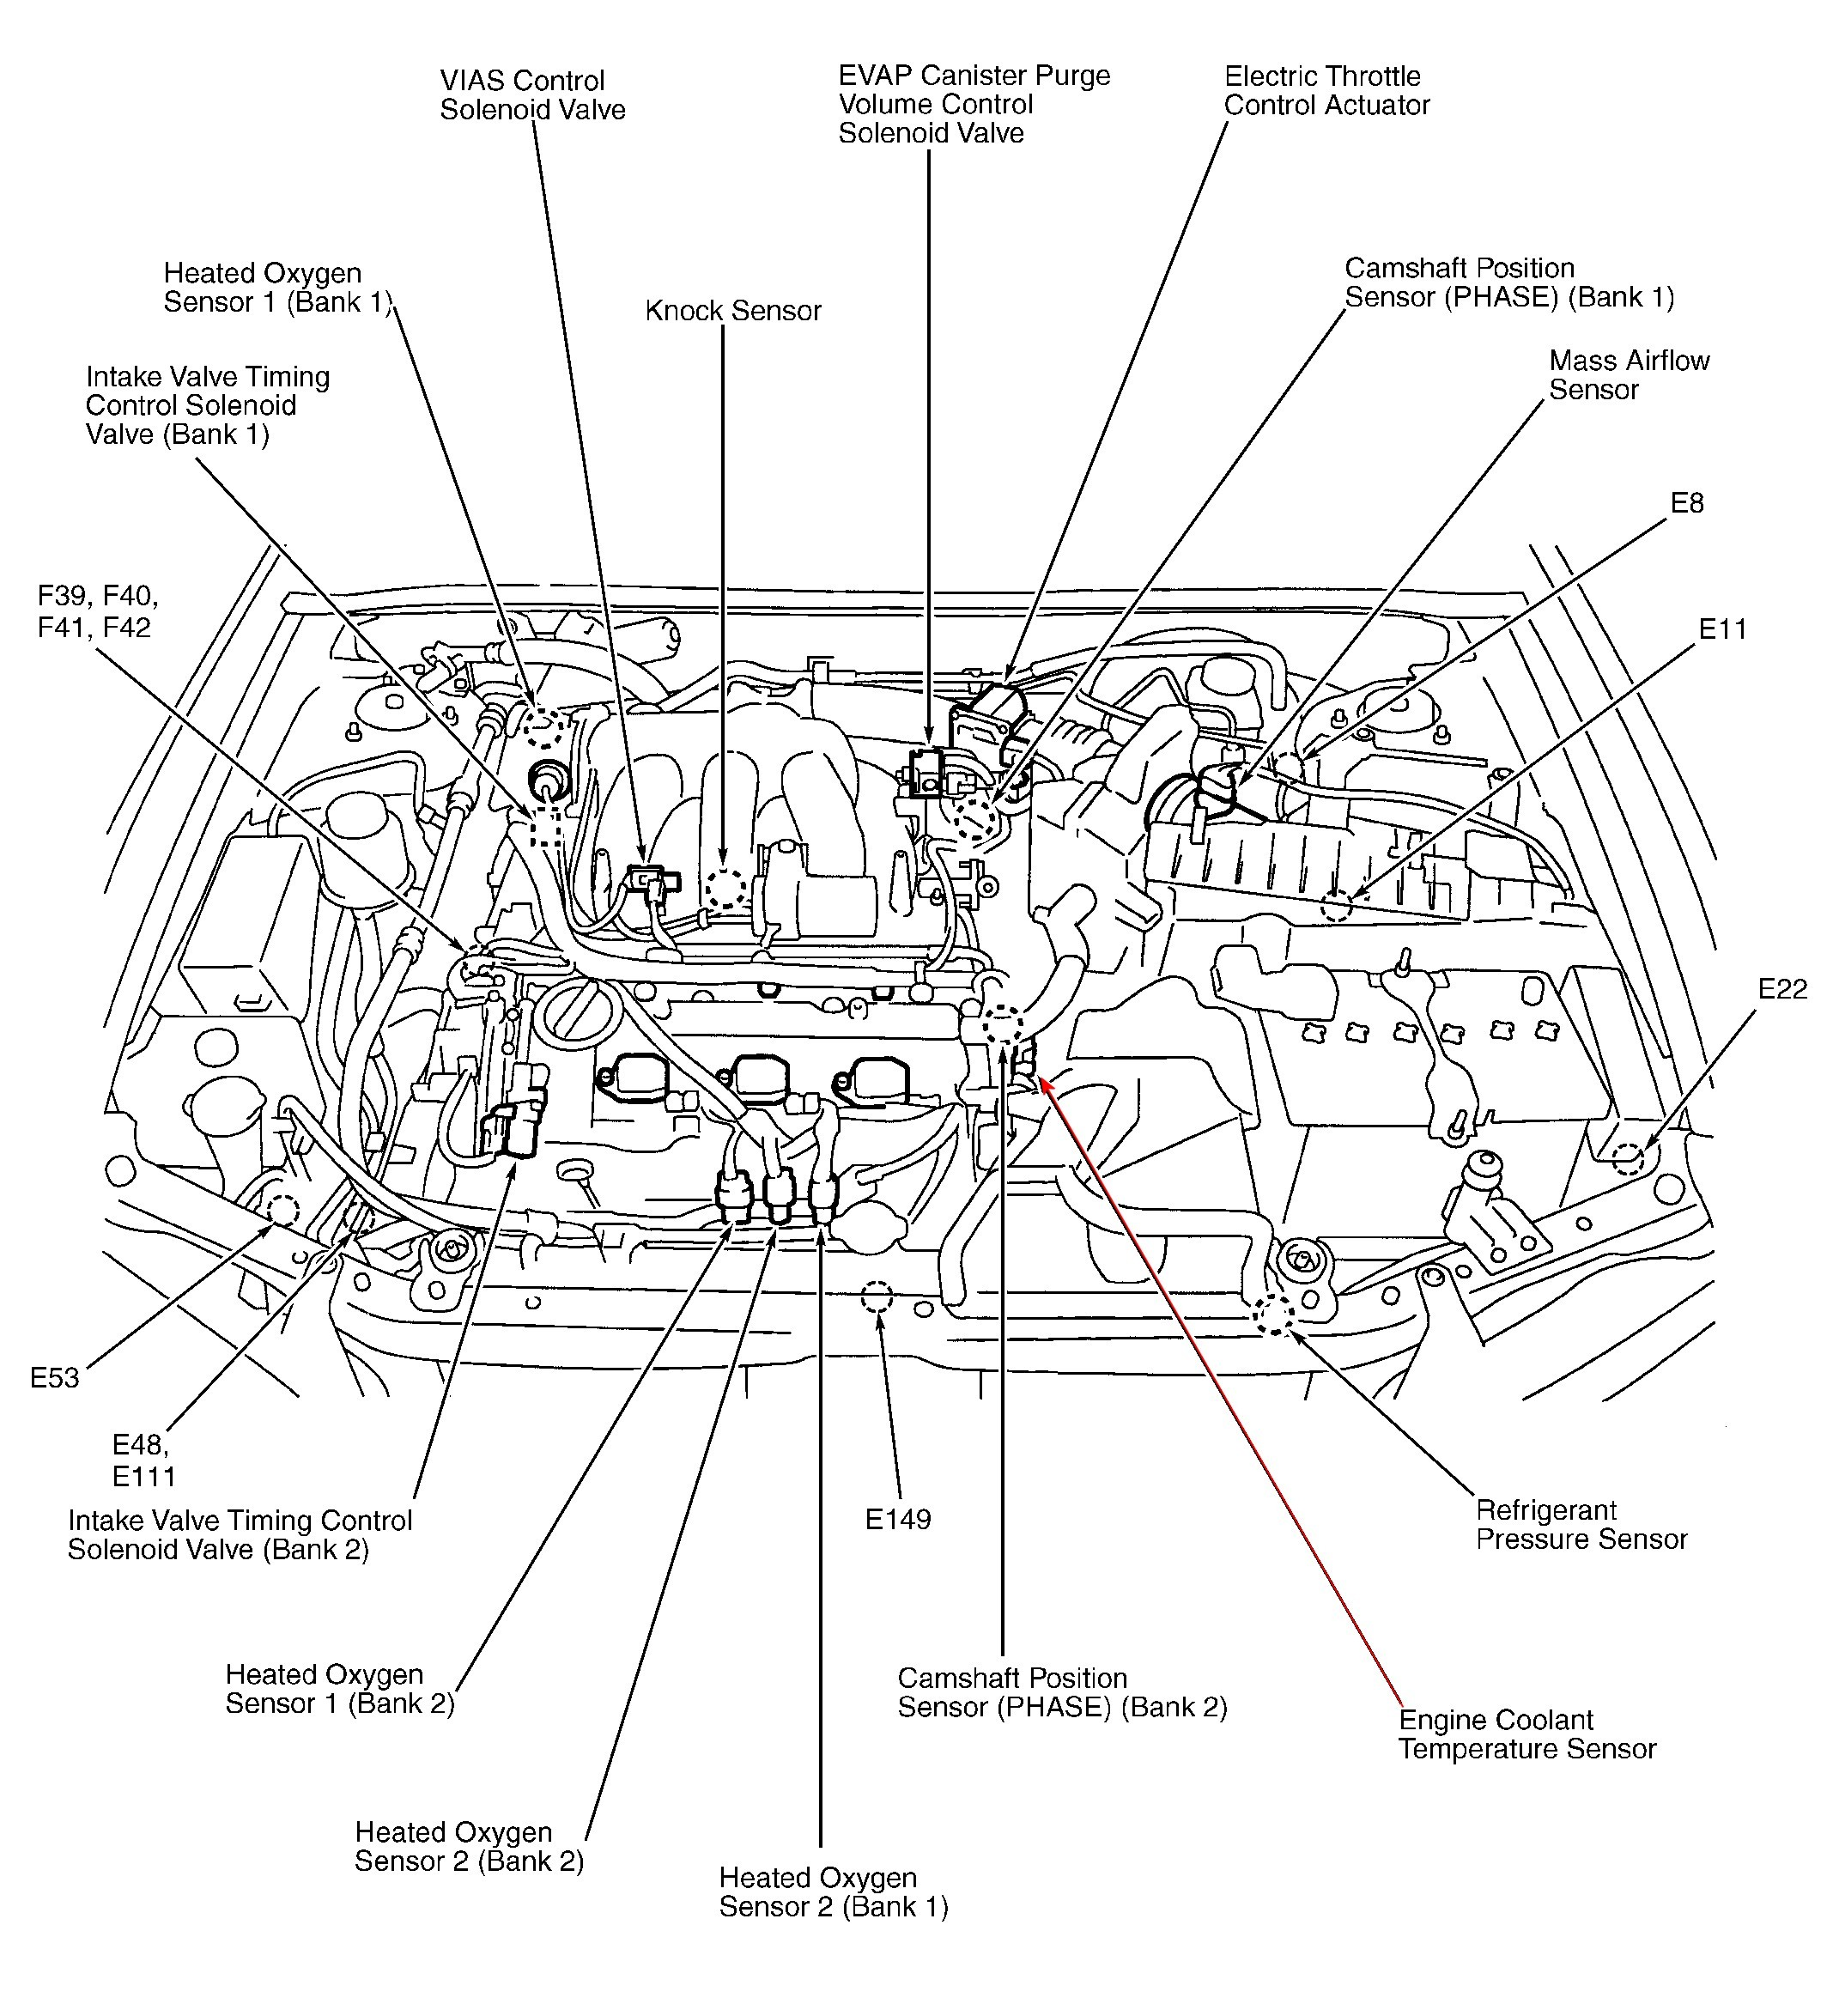 95 altima engine diagram custom wiring diagram u2022 rh littlewaves co 2006 Nissan Altima Engine Diagram 99 Nissan Altima Belt Diagram